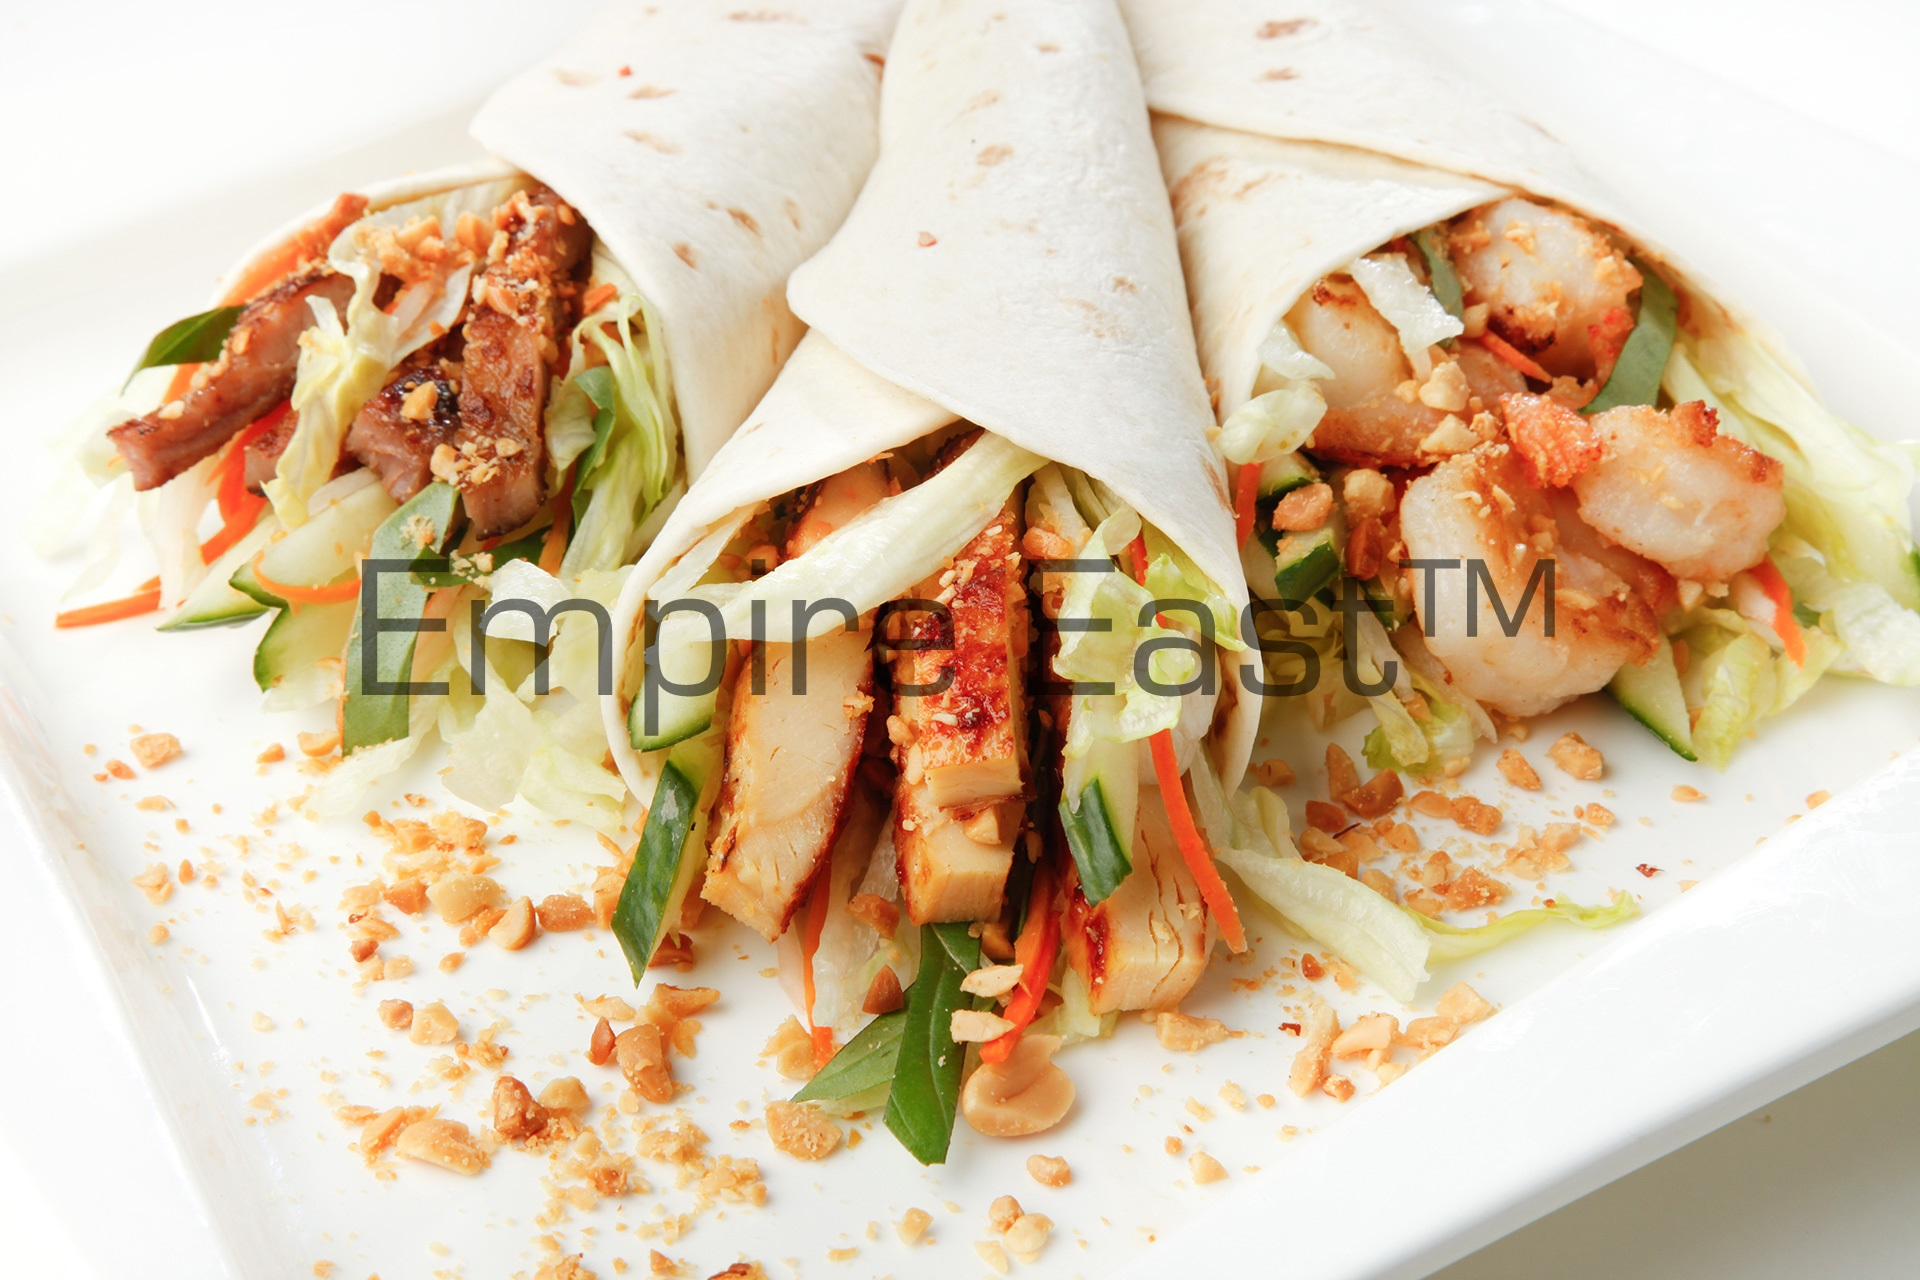 Grilled Asian Wraps ( Richmond Ave location only )